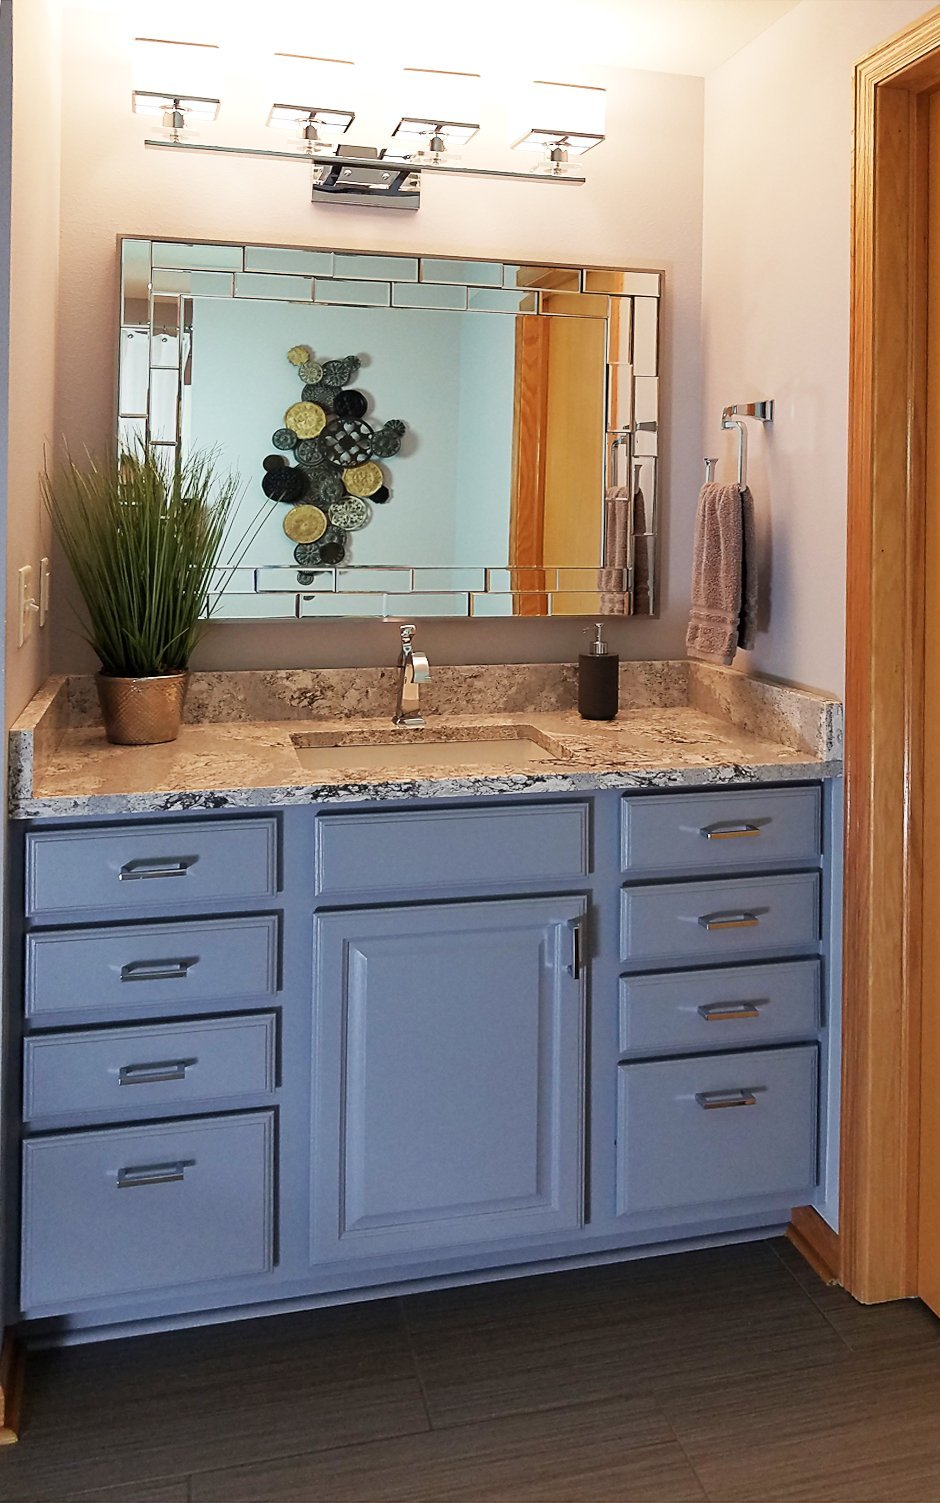 small vanity ideas, bathroom remodel, Madison WI, zgallerie kenzie mirror, summerhill cambria countertop